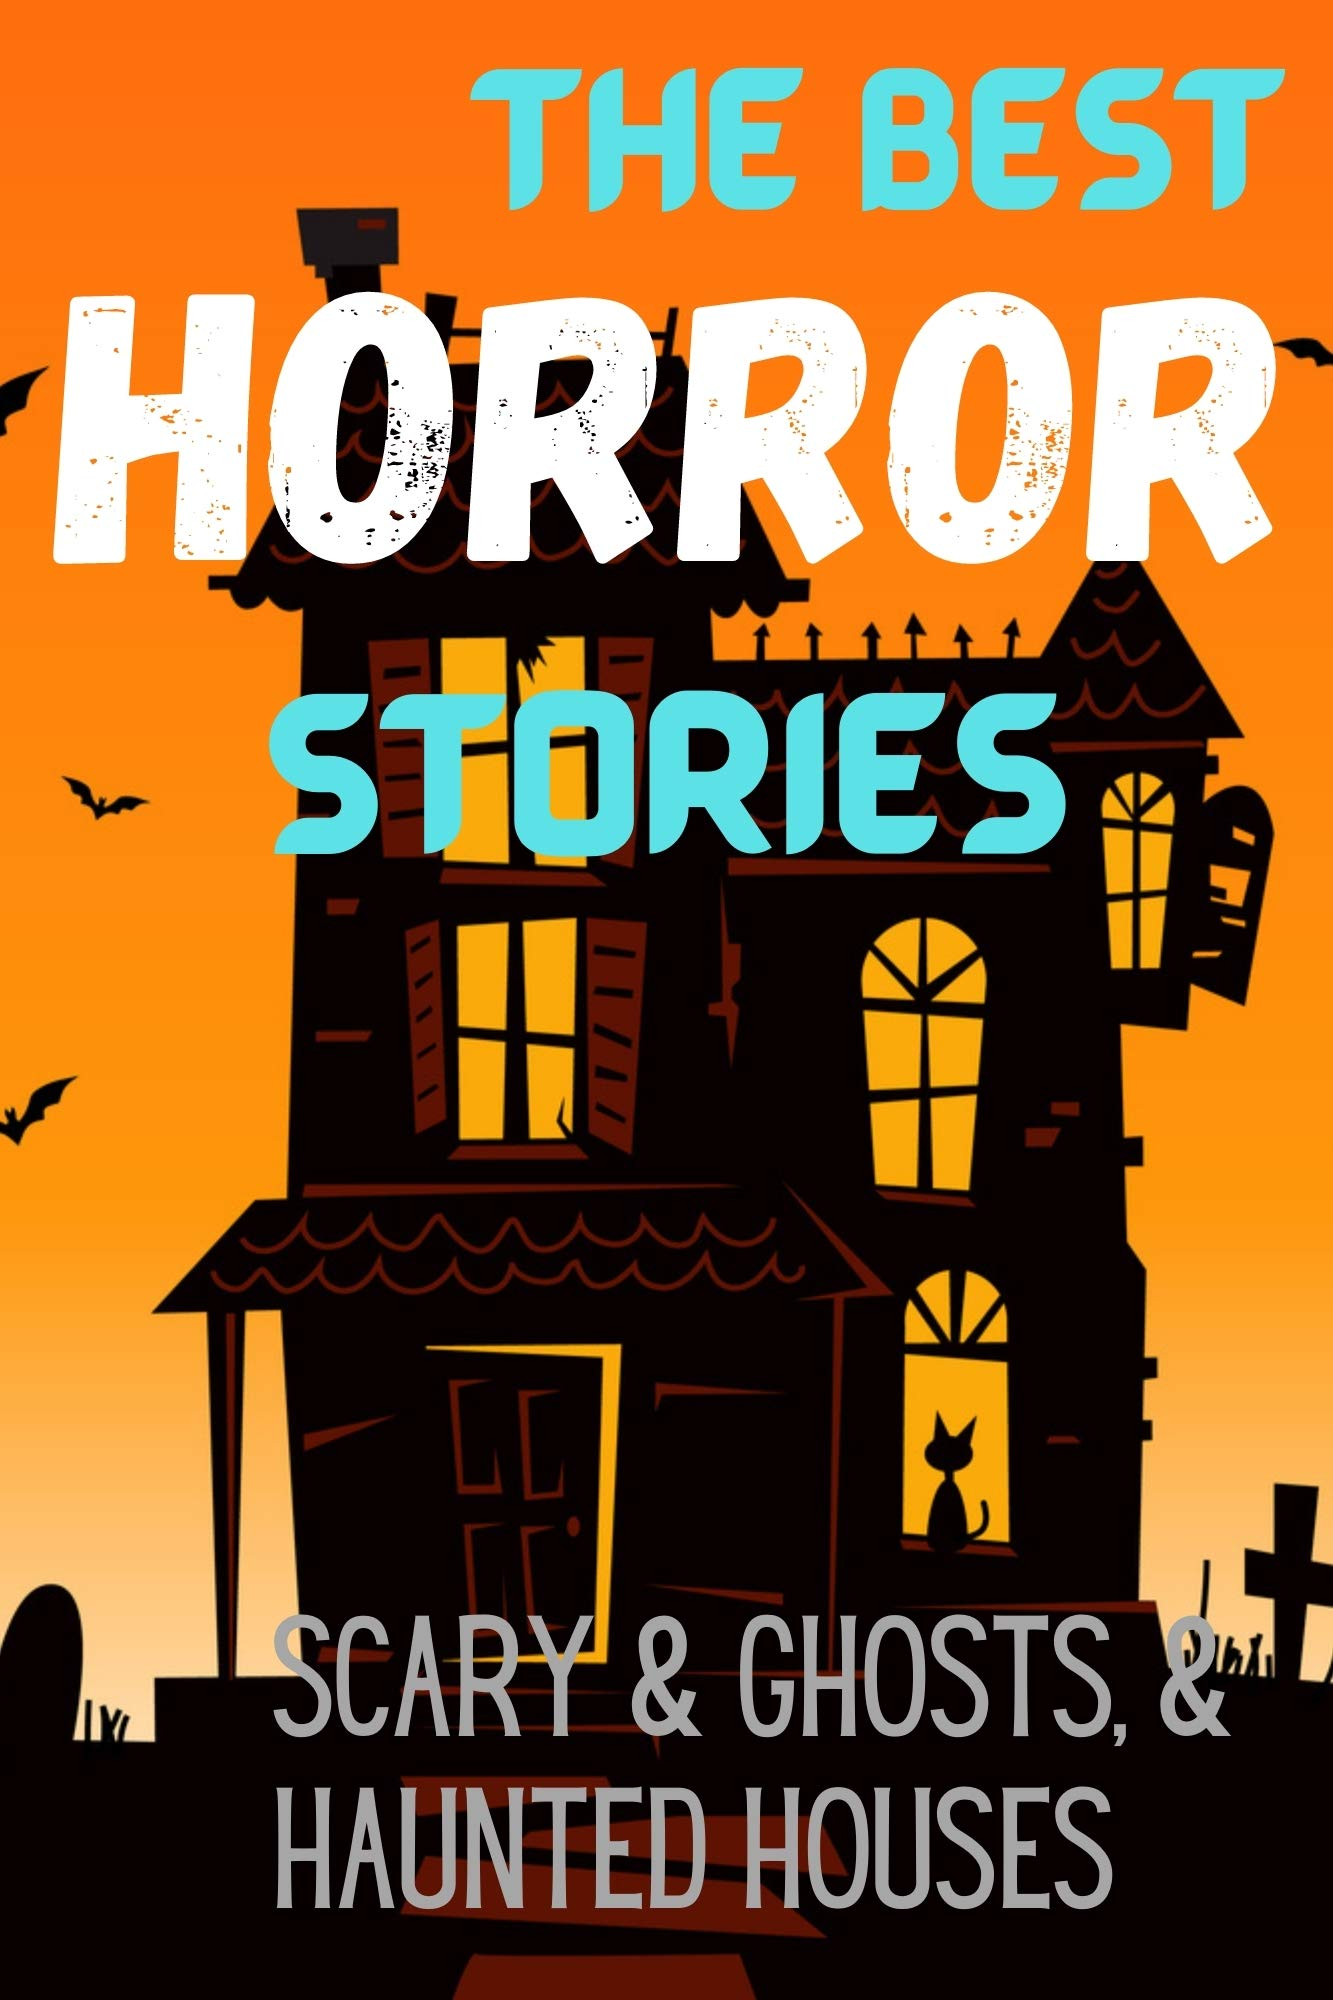 The Best Horror Stories : Scary & Ghosts, & Haunted Houses